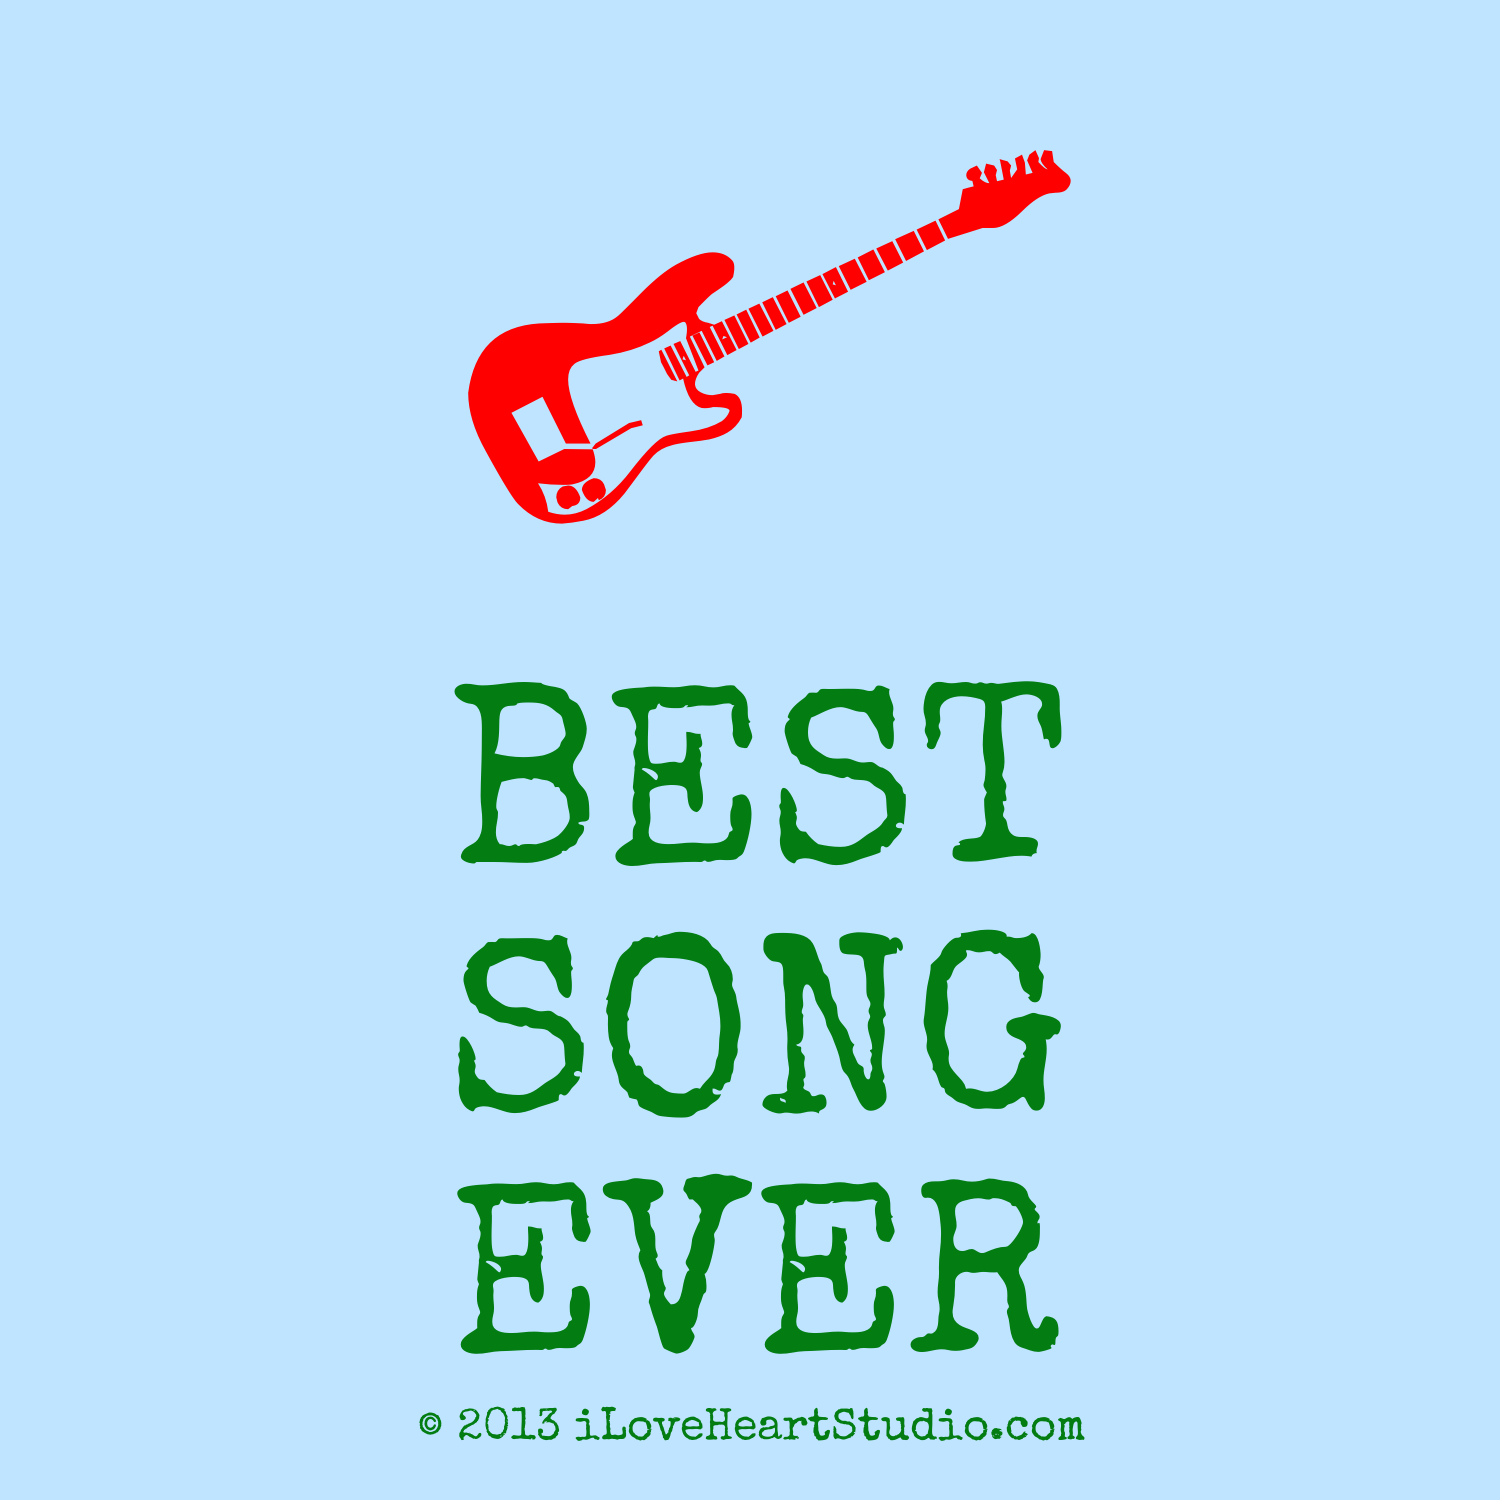 39 electric guitar best song ever 39 design on t shirt for Best house music ever